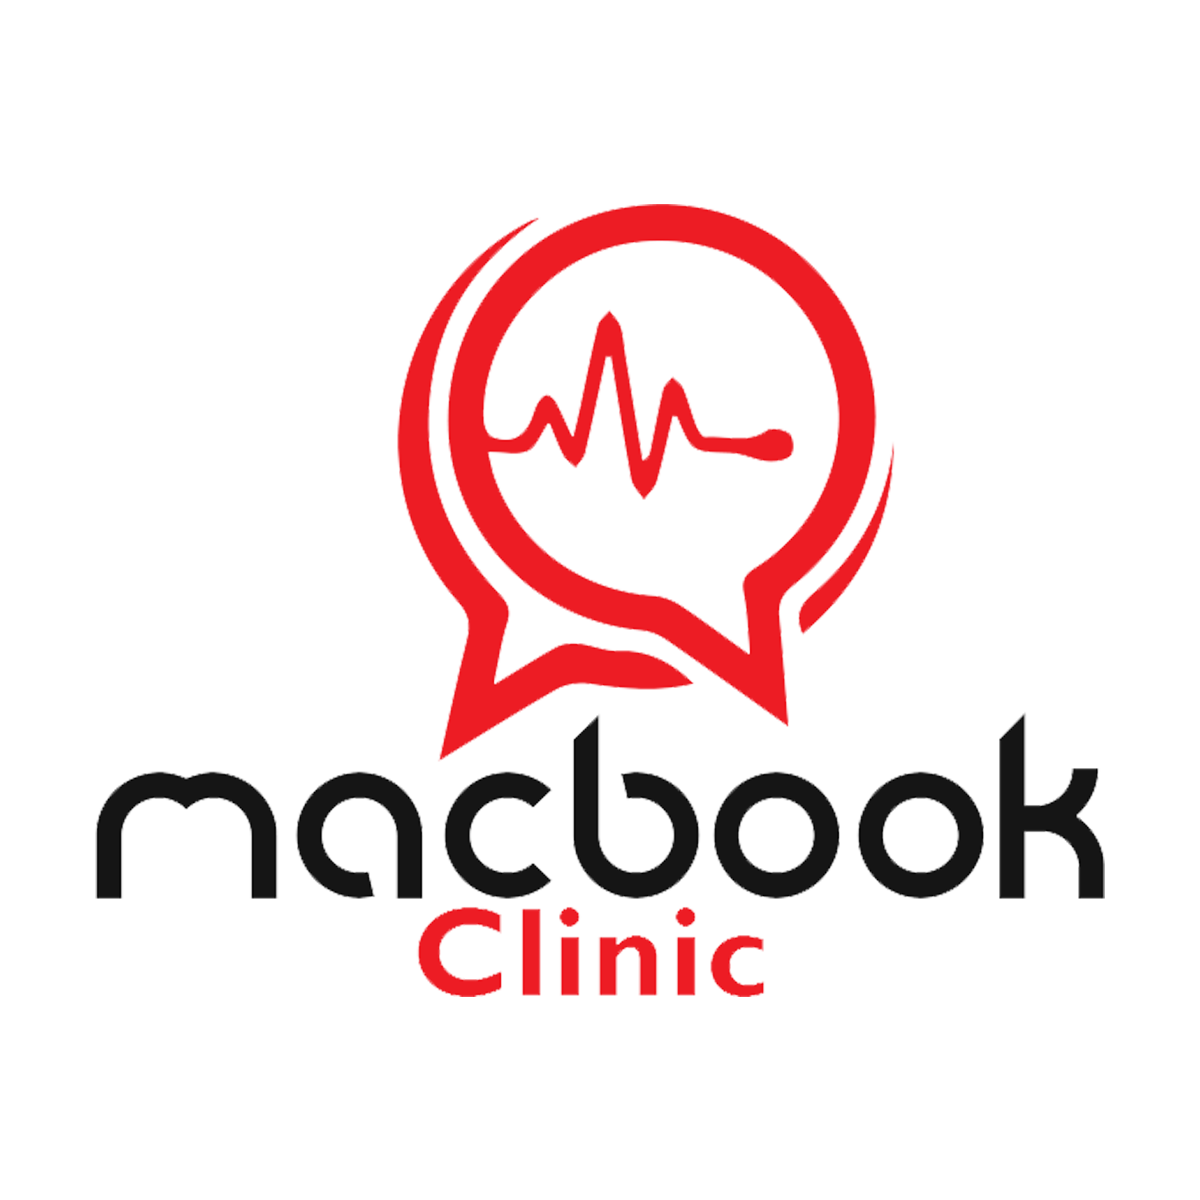 MacBook Clinic